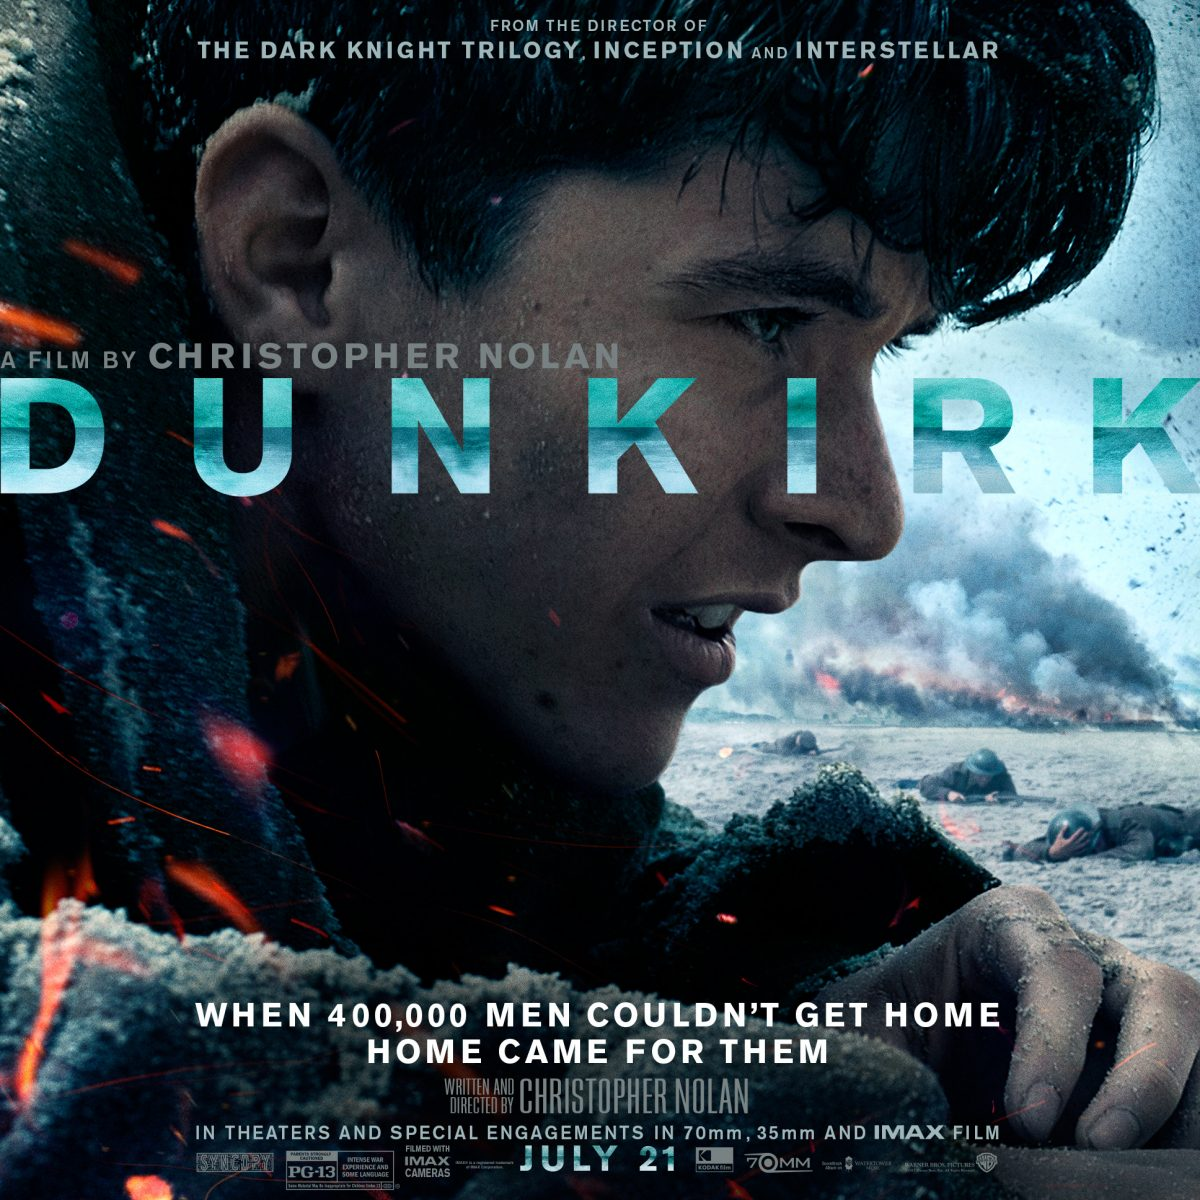 Tech Trends VR Tech Dunkirk Virtual Reality Experience Intel Warner Brothers VR Consultancy